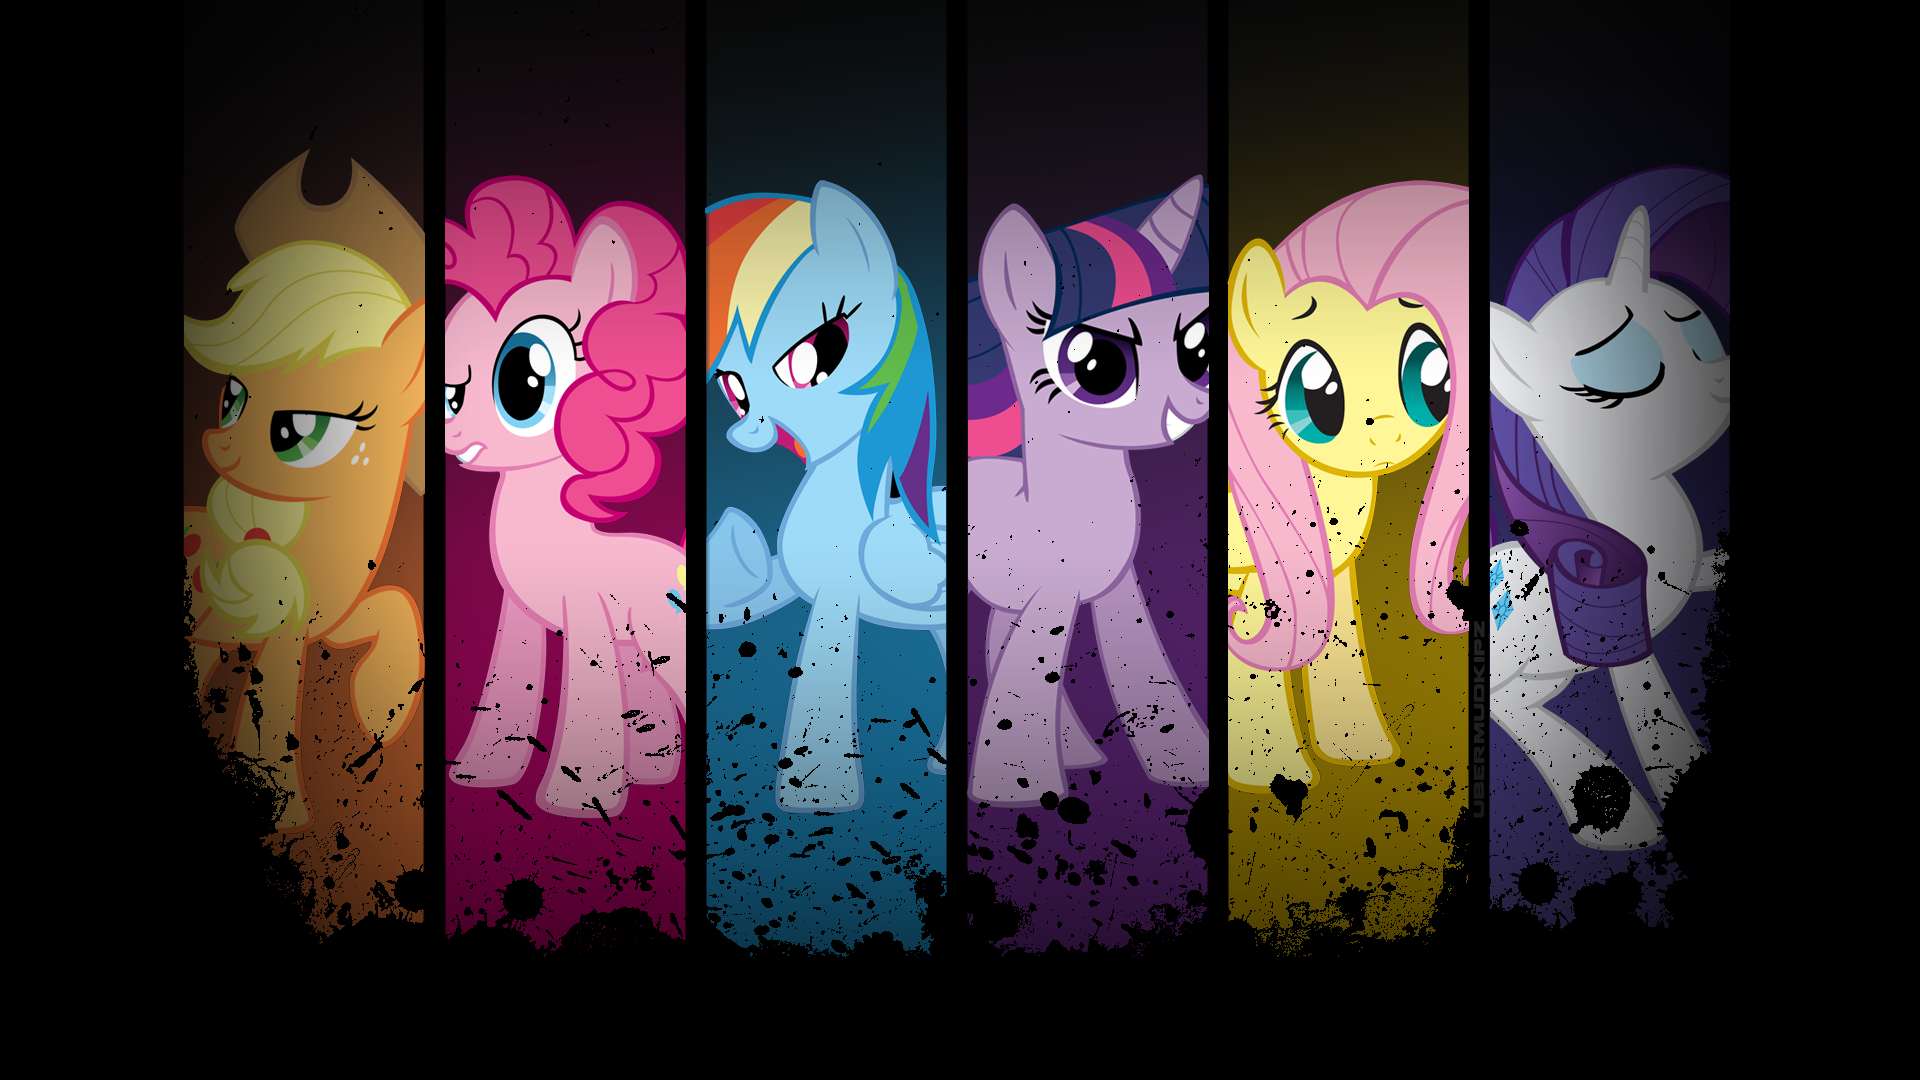 V.77 My Little Pony, HD Widescreen Images